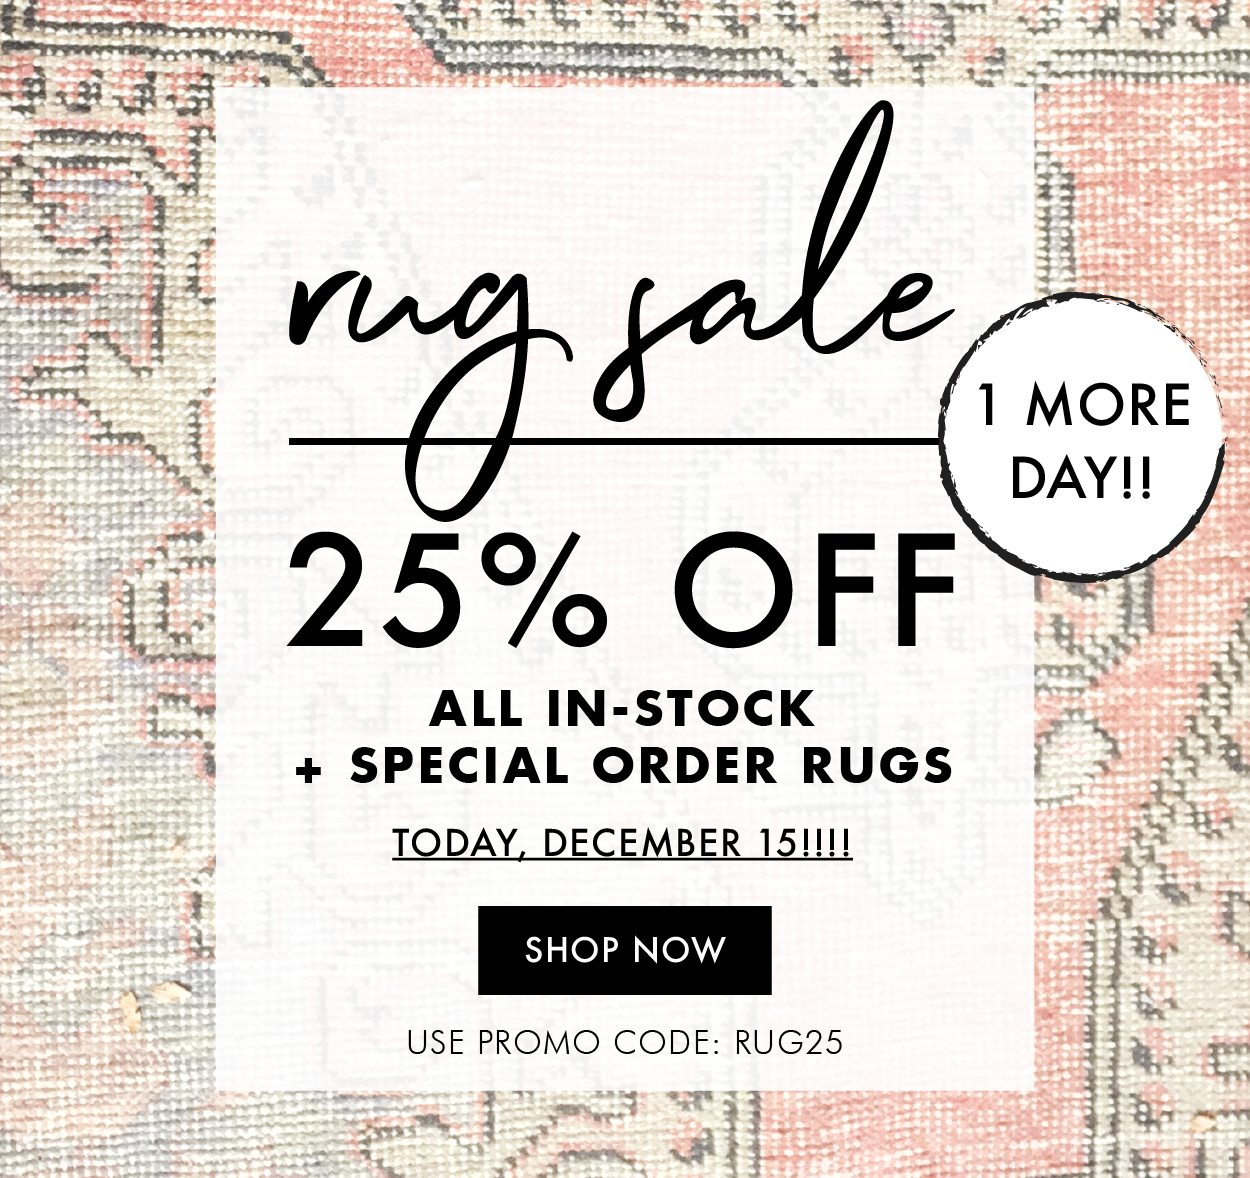 rug-promo-graphic-extended